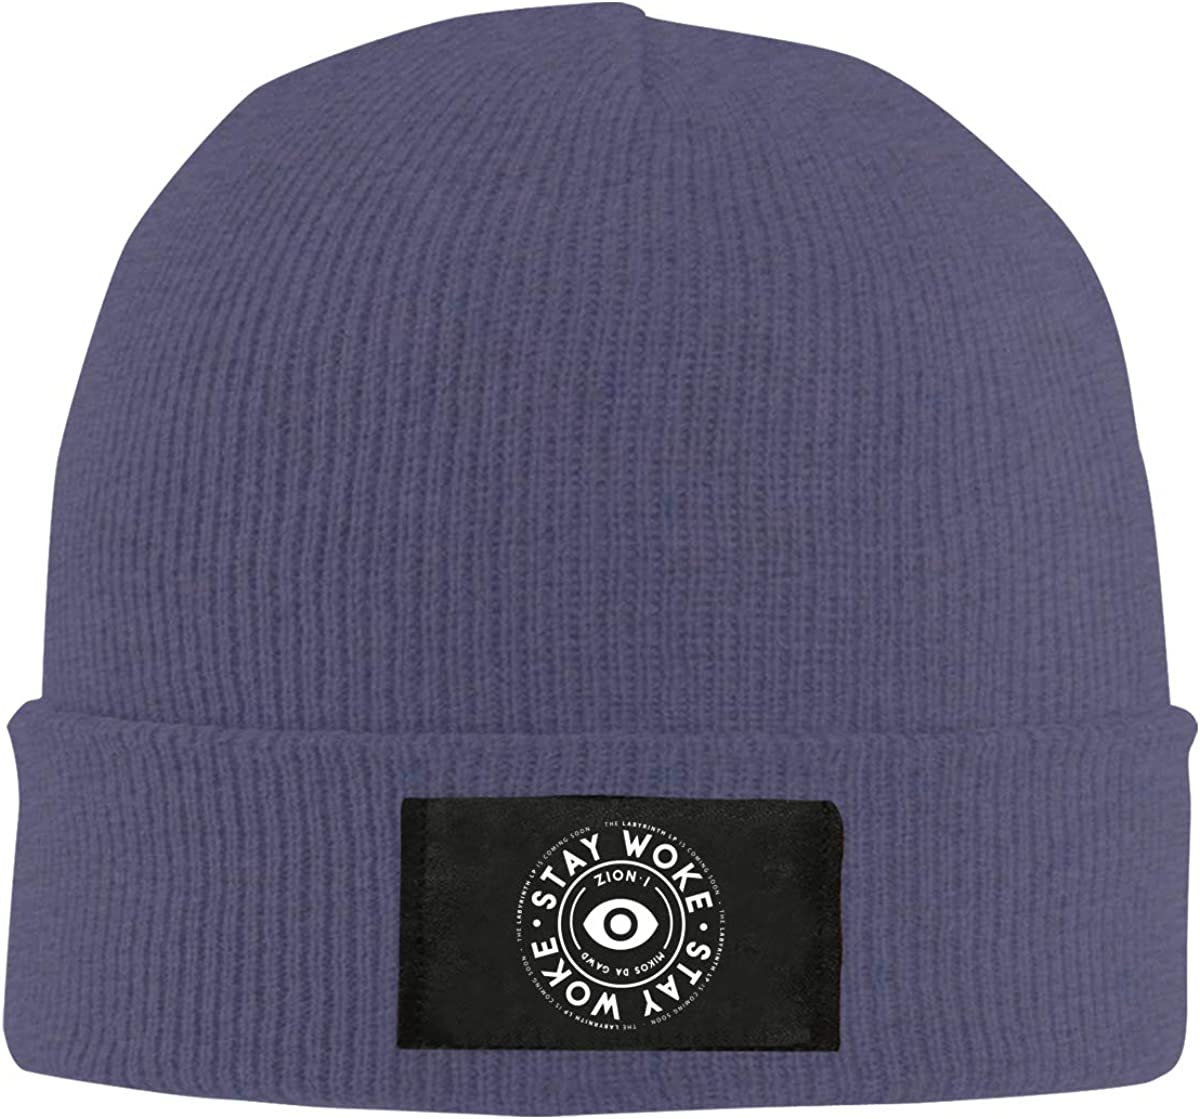 Stay Woke Logo Top Level Beanie Men Women Unisex Stylish Slouch Beanie Hats Black